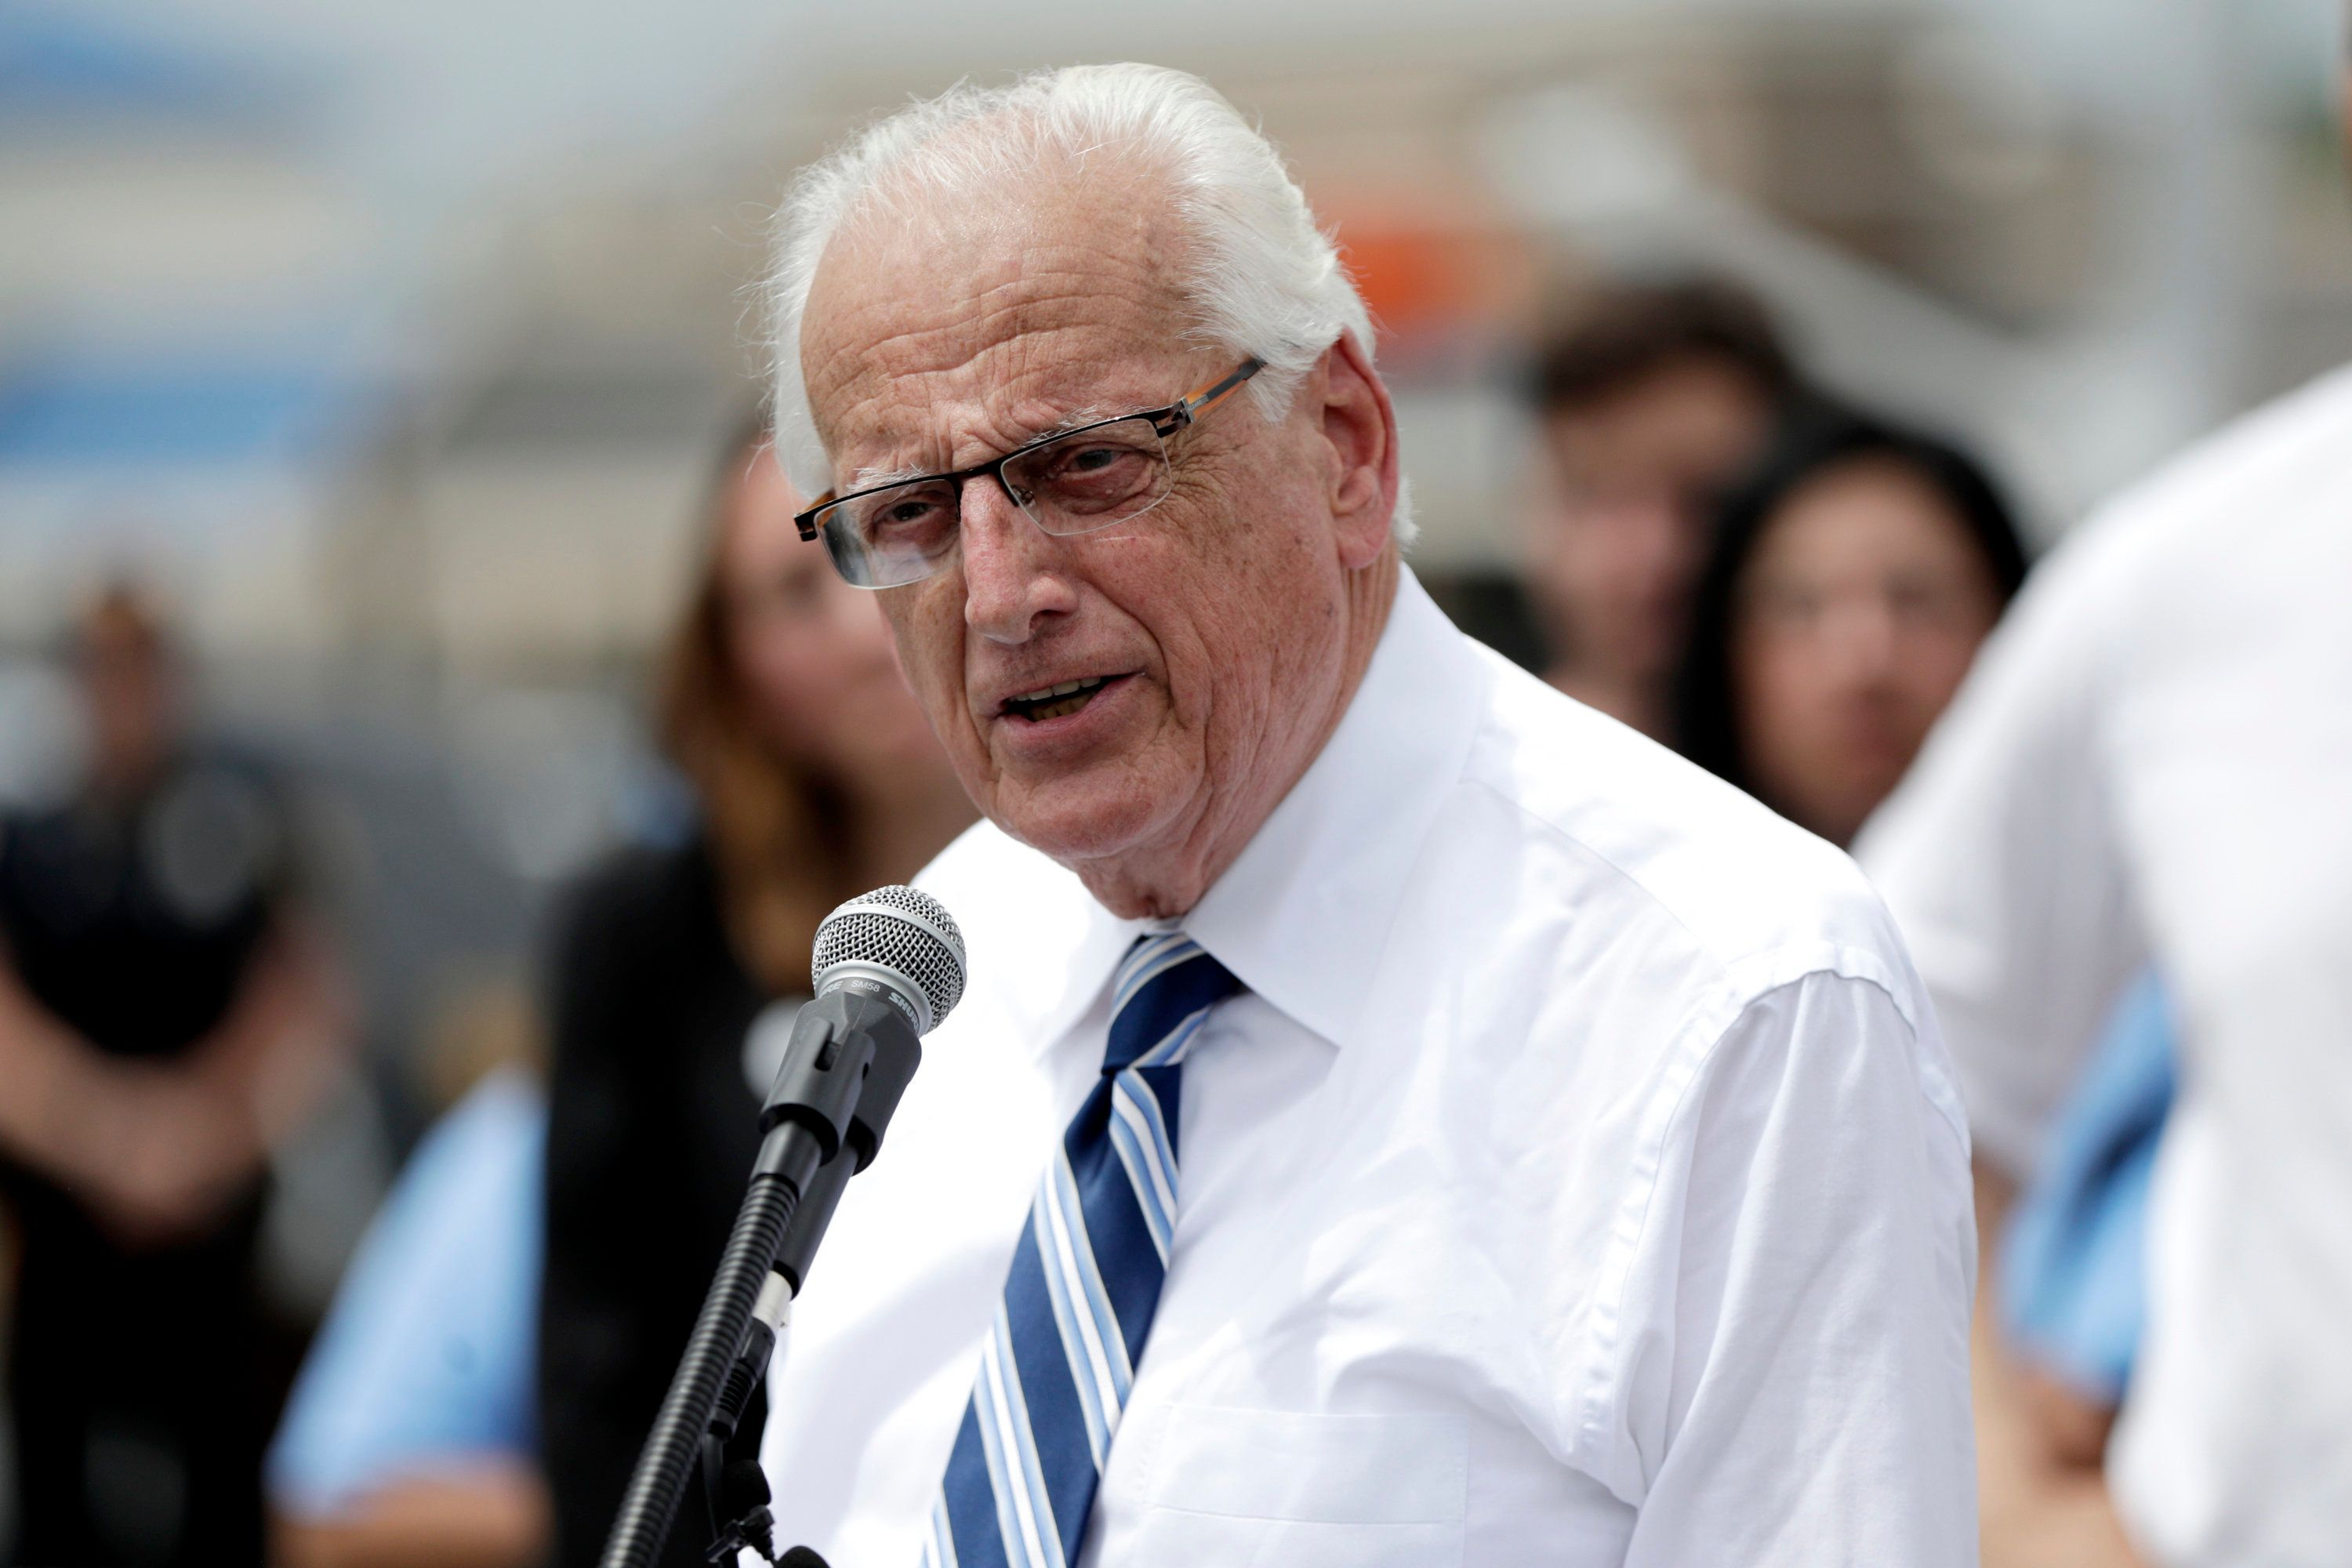 "FILE- In this June 1, 2018, file photo U.S. Rep. Bill Pascrell Jr., D-N.J., speaks during a news conference talking about the closing of Toys R Us outside of one of the store locations in Totowa, N.J. President Donald Trump faces the task of getting his own Congress to sign off on the U.S.-Mexico-Canada Agreement, which is meant to replace the 24-year-old North American Free Trade Agreement. ""It's going to be a very tough sell,'' said Pascrell, top Democrat on the House subcommittee that oversees trade issues. (AP Photo/Julio Cortez, File)"